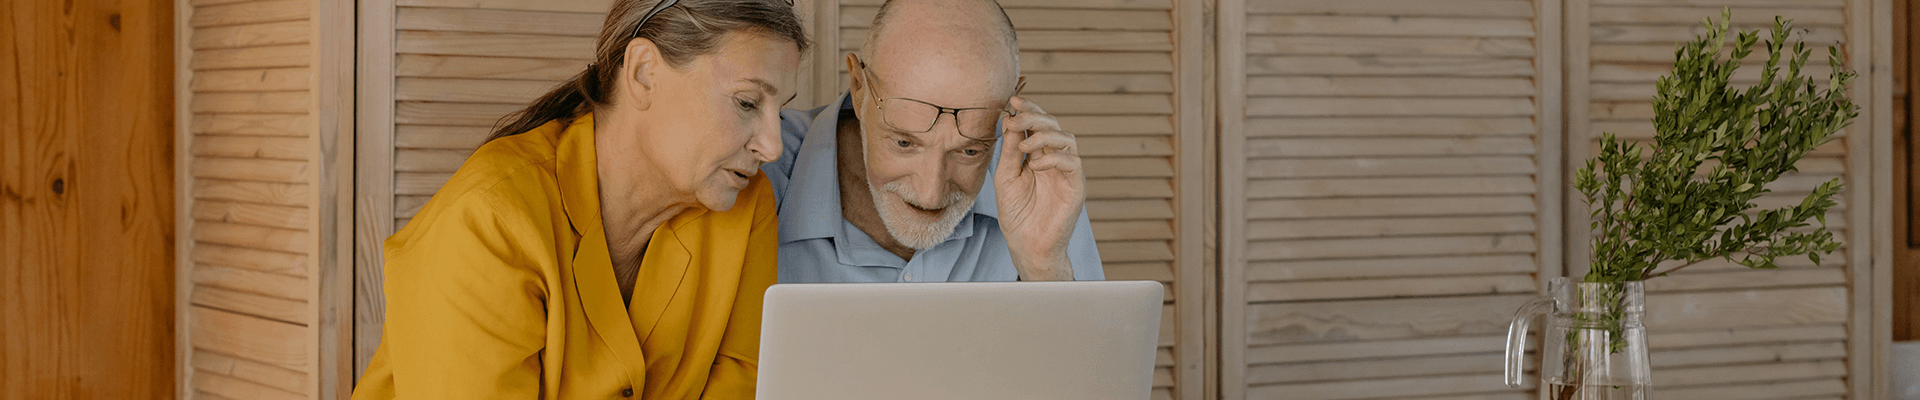 home owners looking at real estate website on laptop